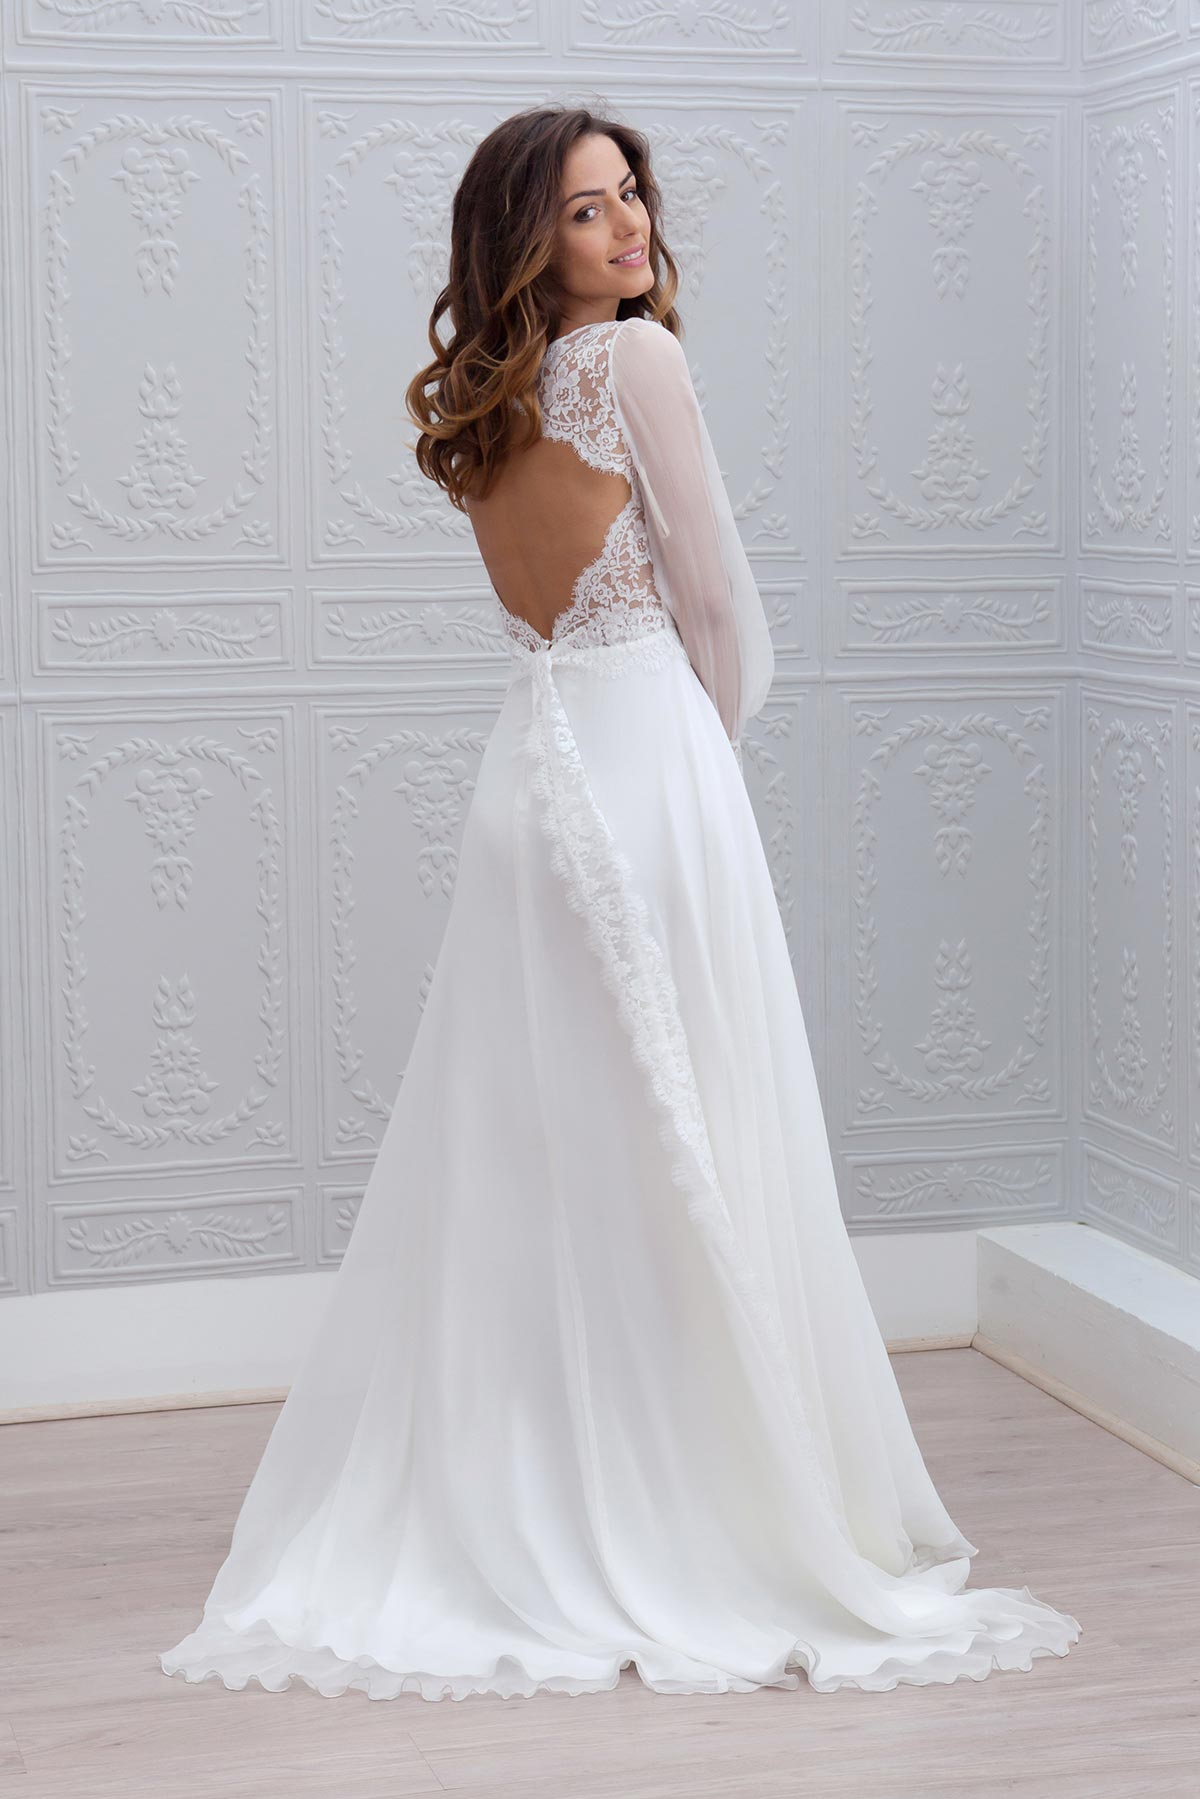 Marie laporte collection 2015 for Robes longues de mariage